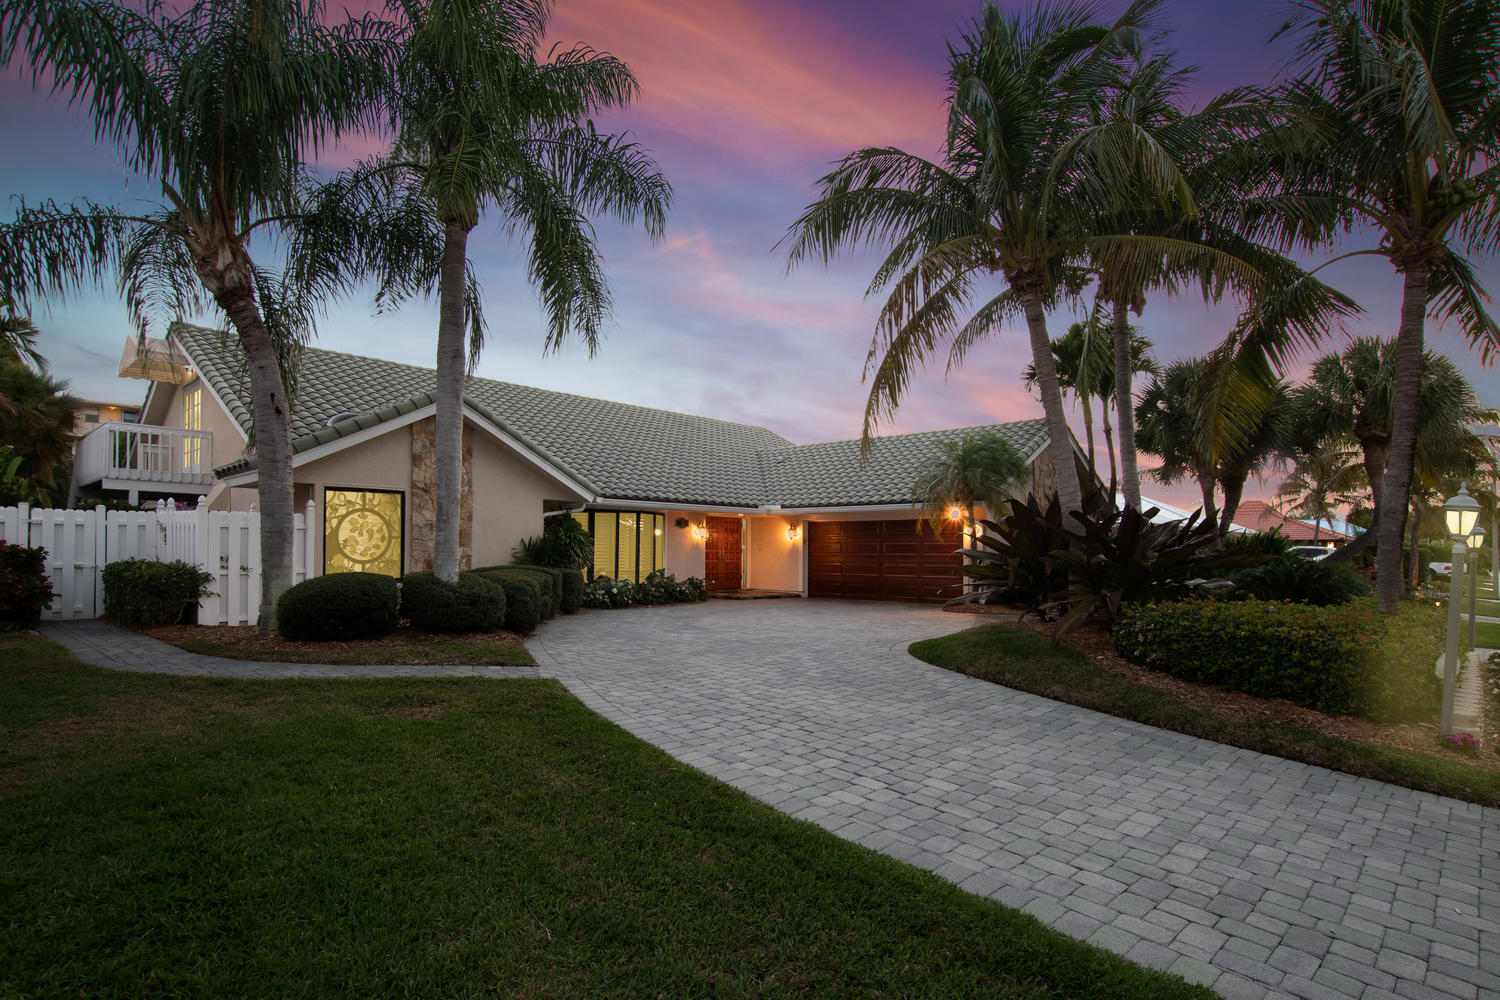 126 Anchorage Drive, North Palm Beach, Florida 33408, 4 Bedrooms Bedrooms, ,3 BathroomsBathrooms,A,Single family,Anchorage,RX-10515010